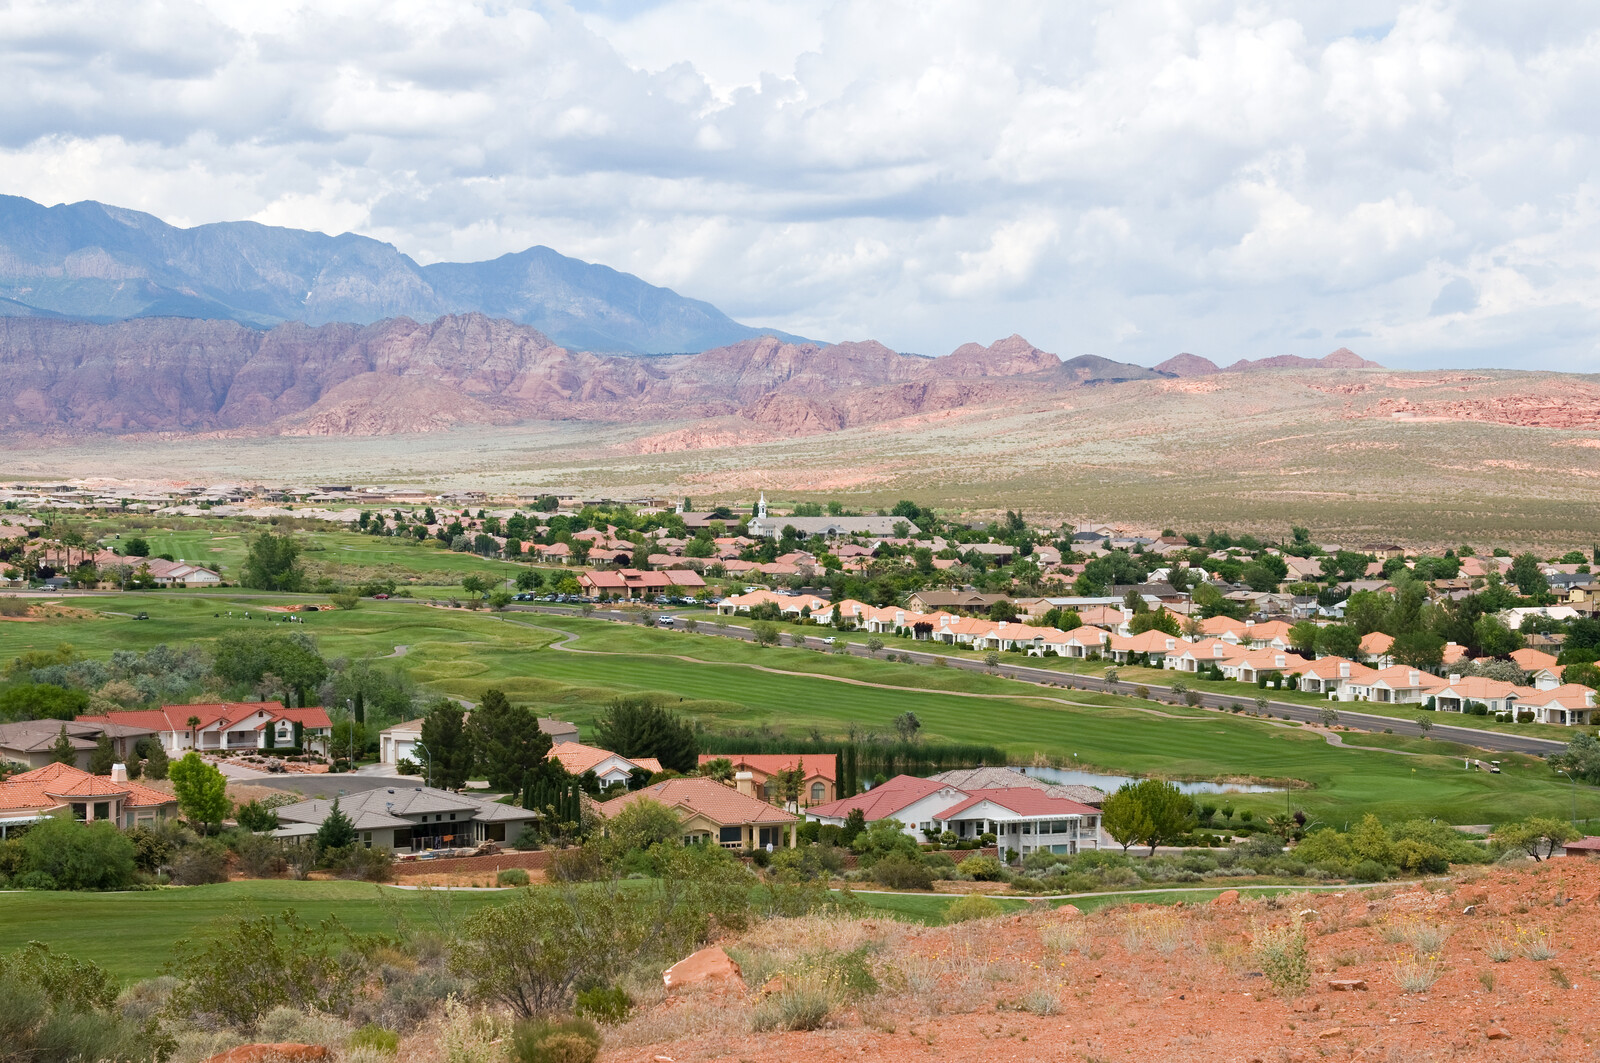 Housing development against red rocks in saint george, Utah, green grass around the houses, but scrub grass and rocky hills in the background